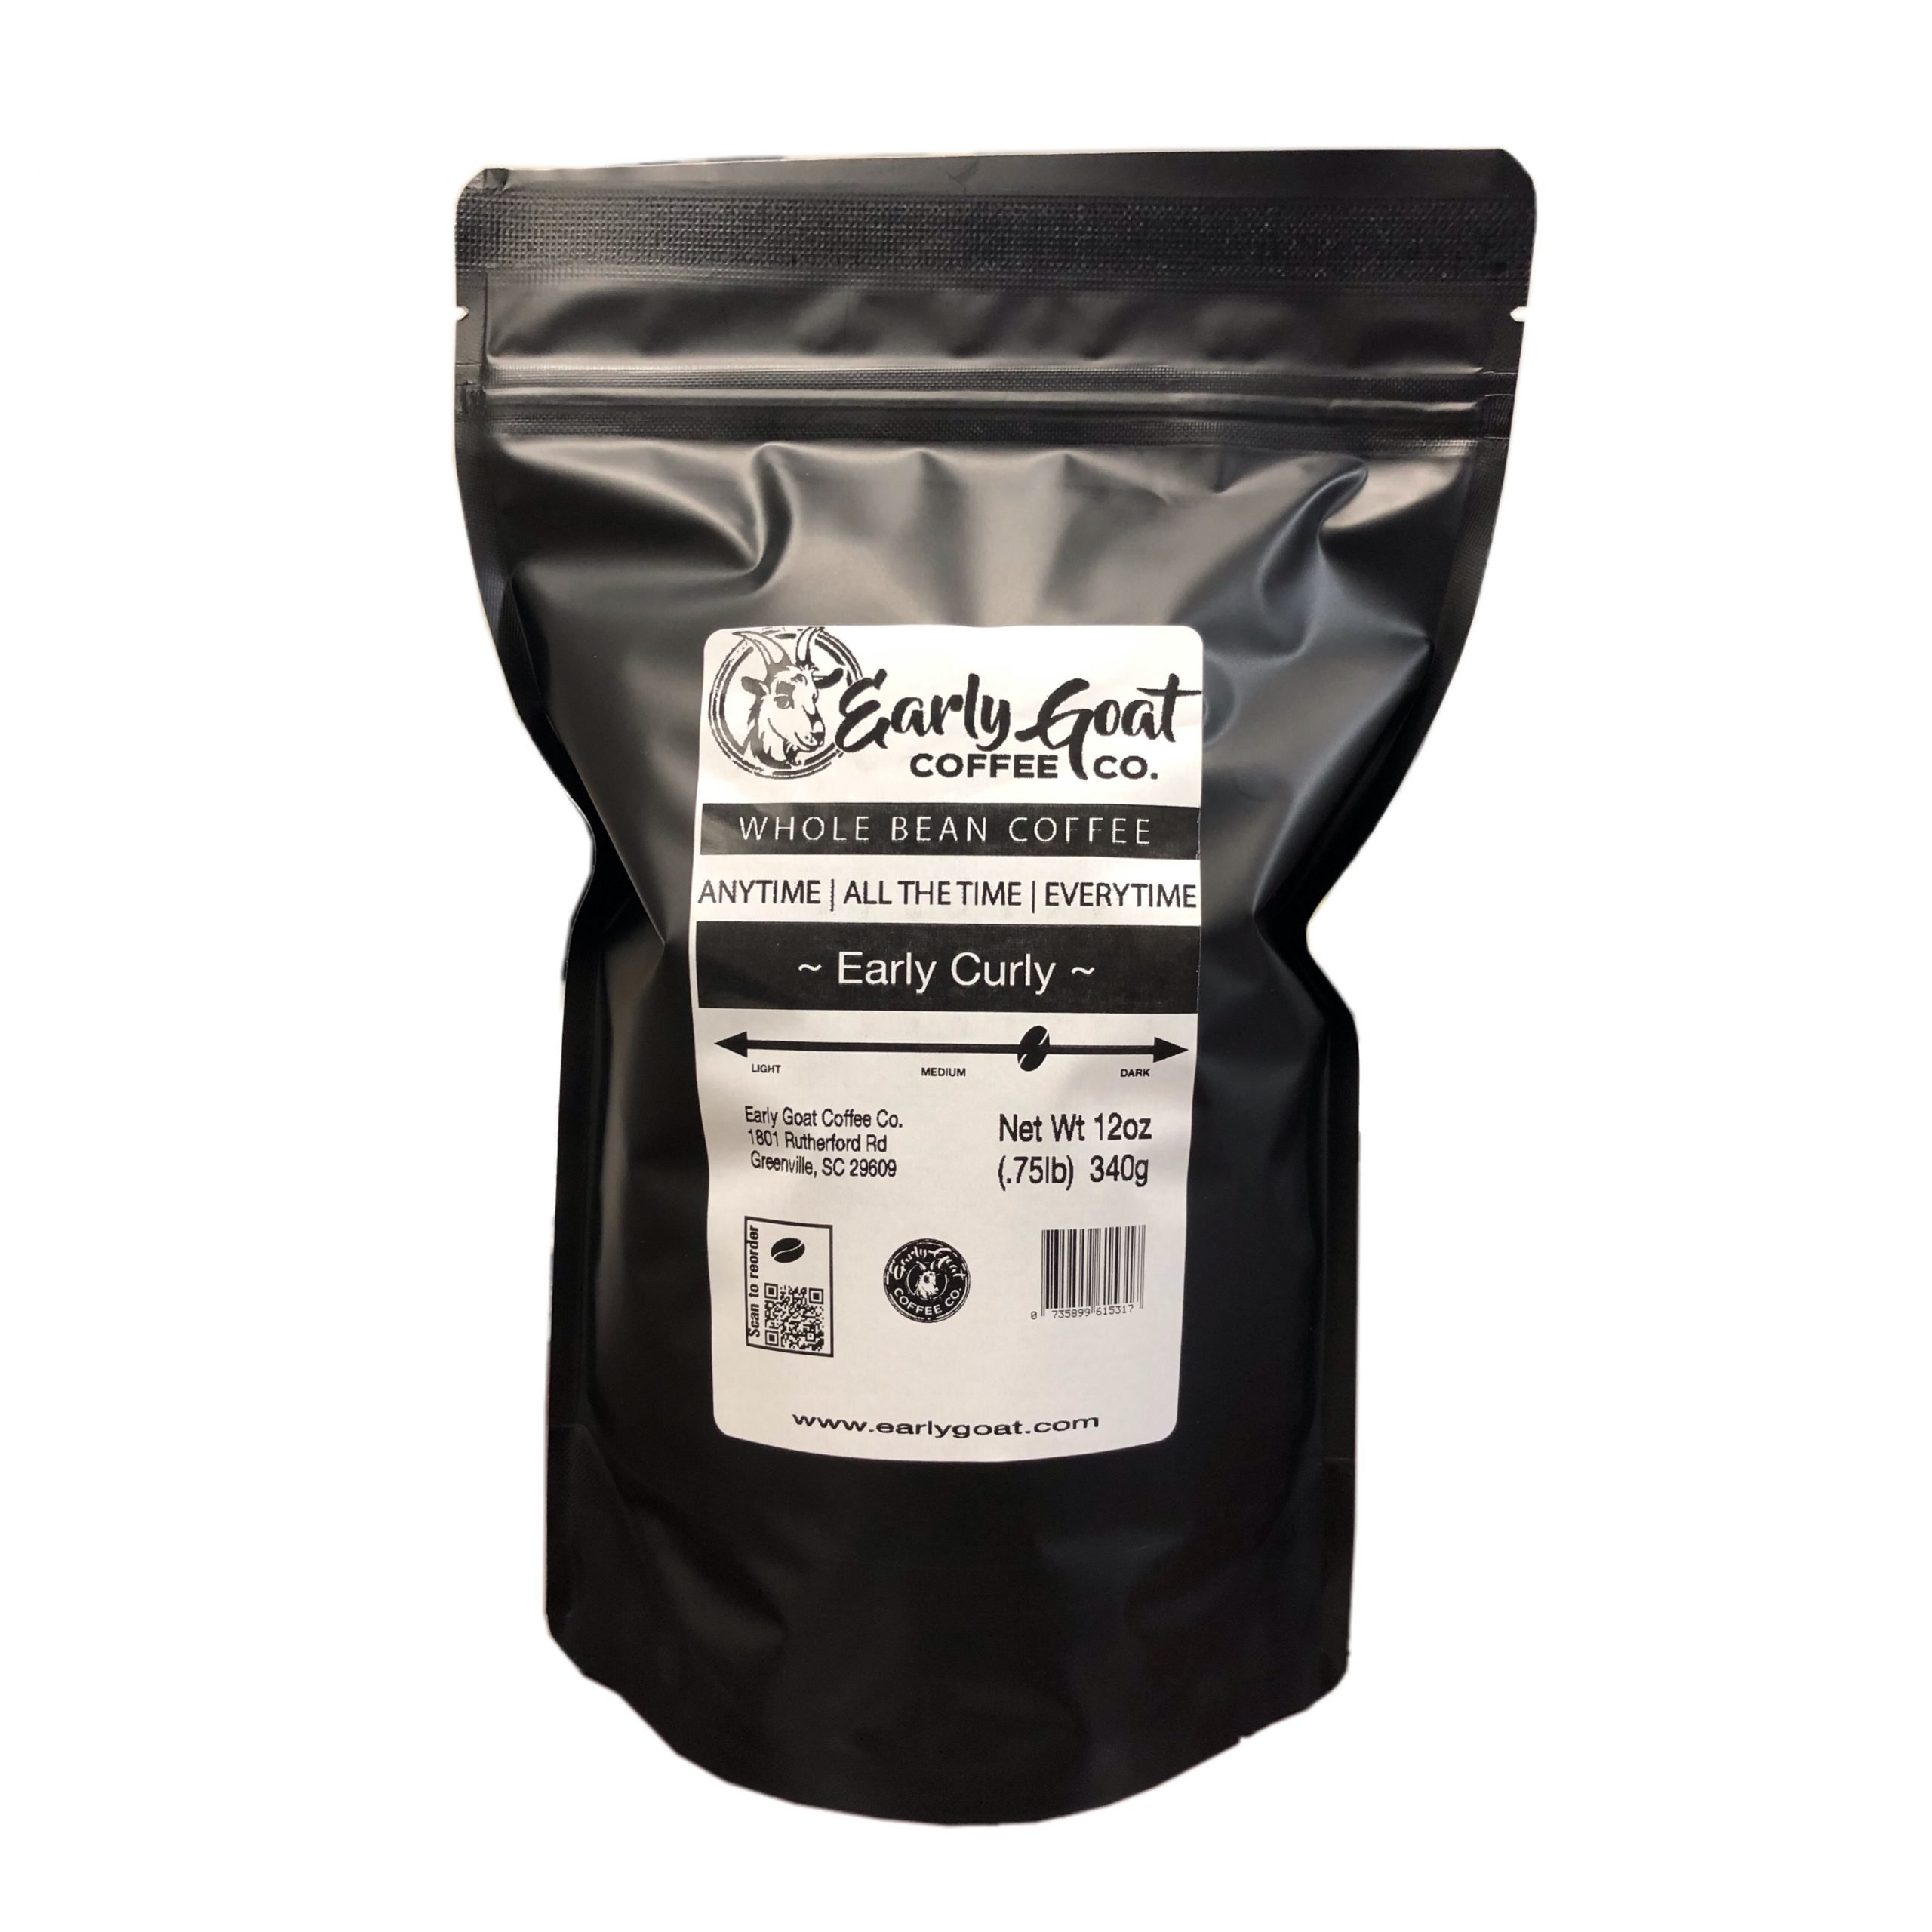 Early Curly – Fresh Roasted Coffee